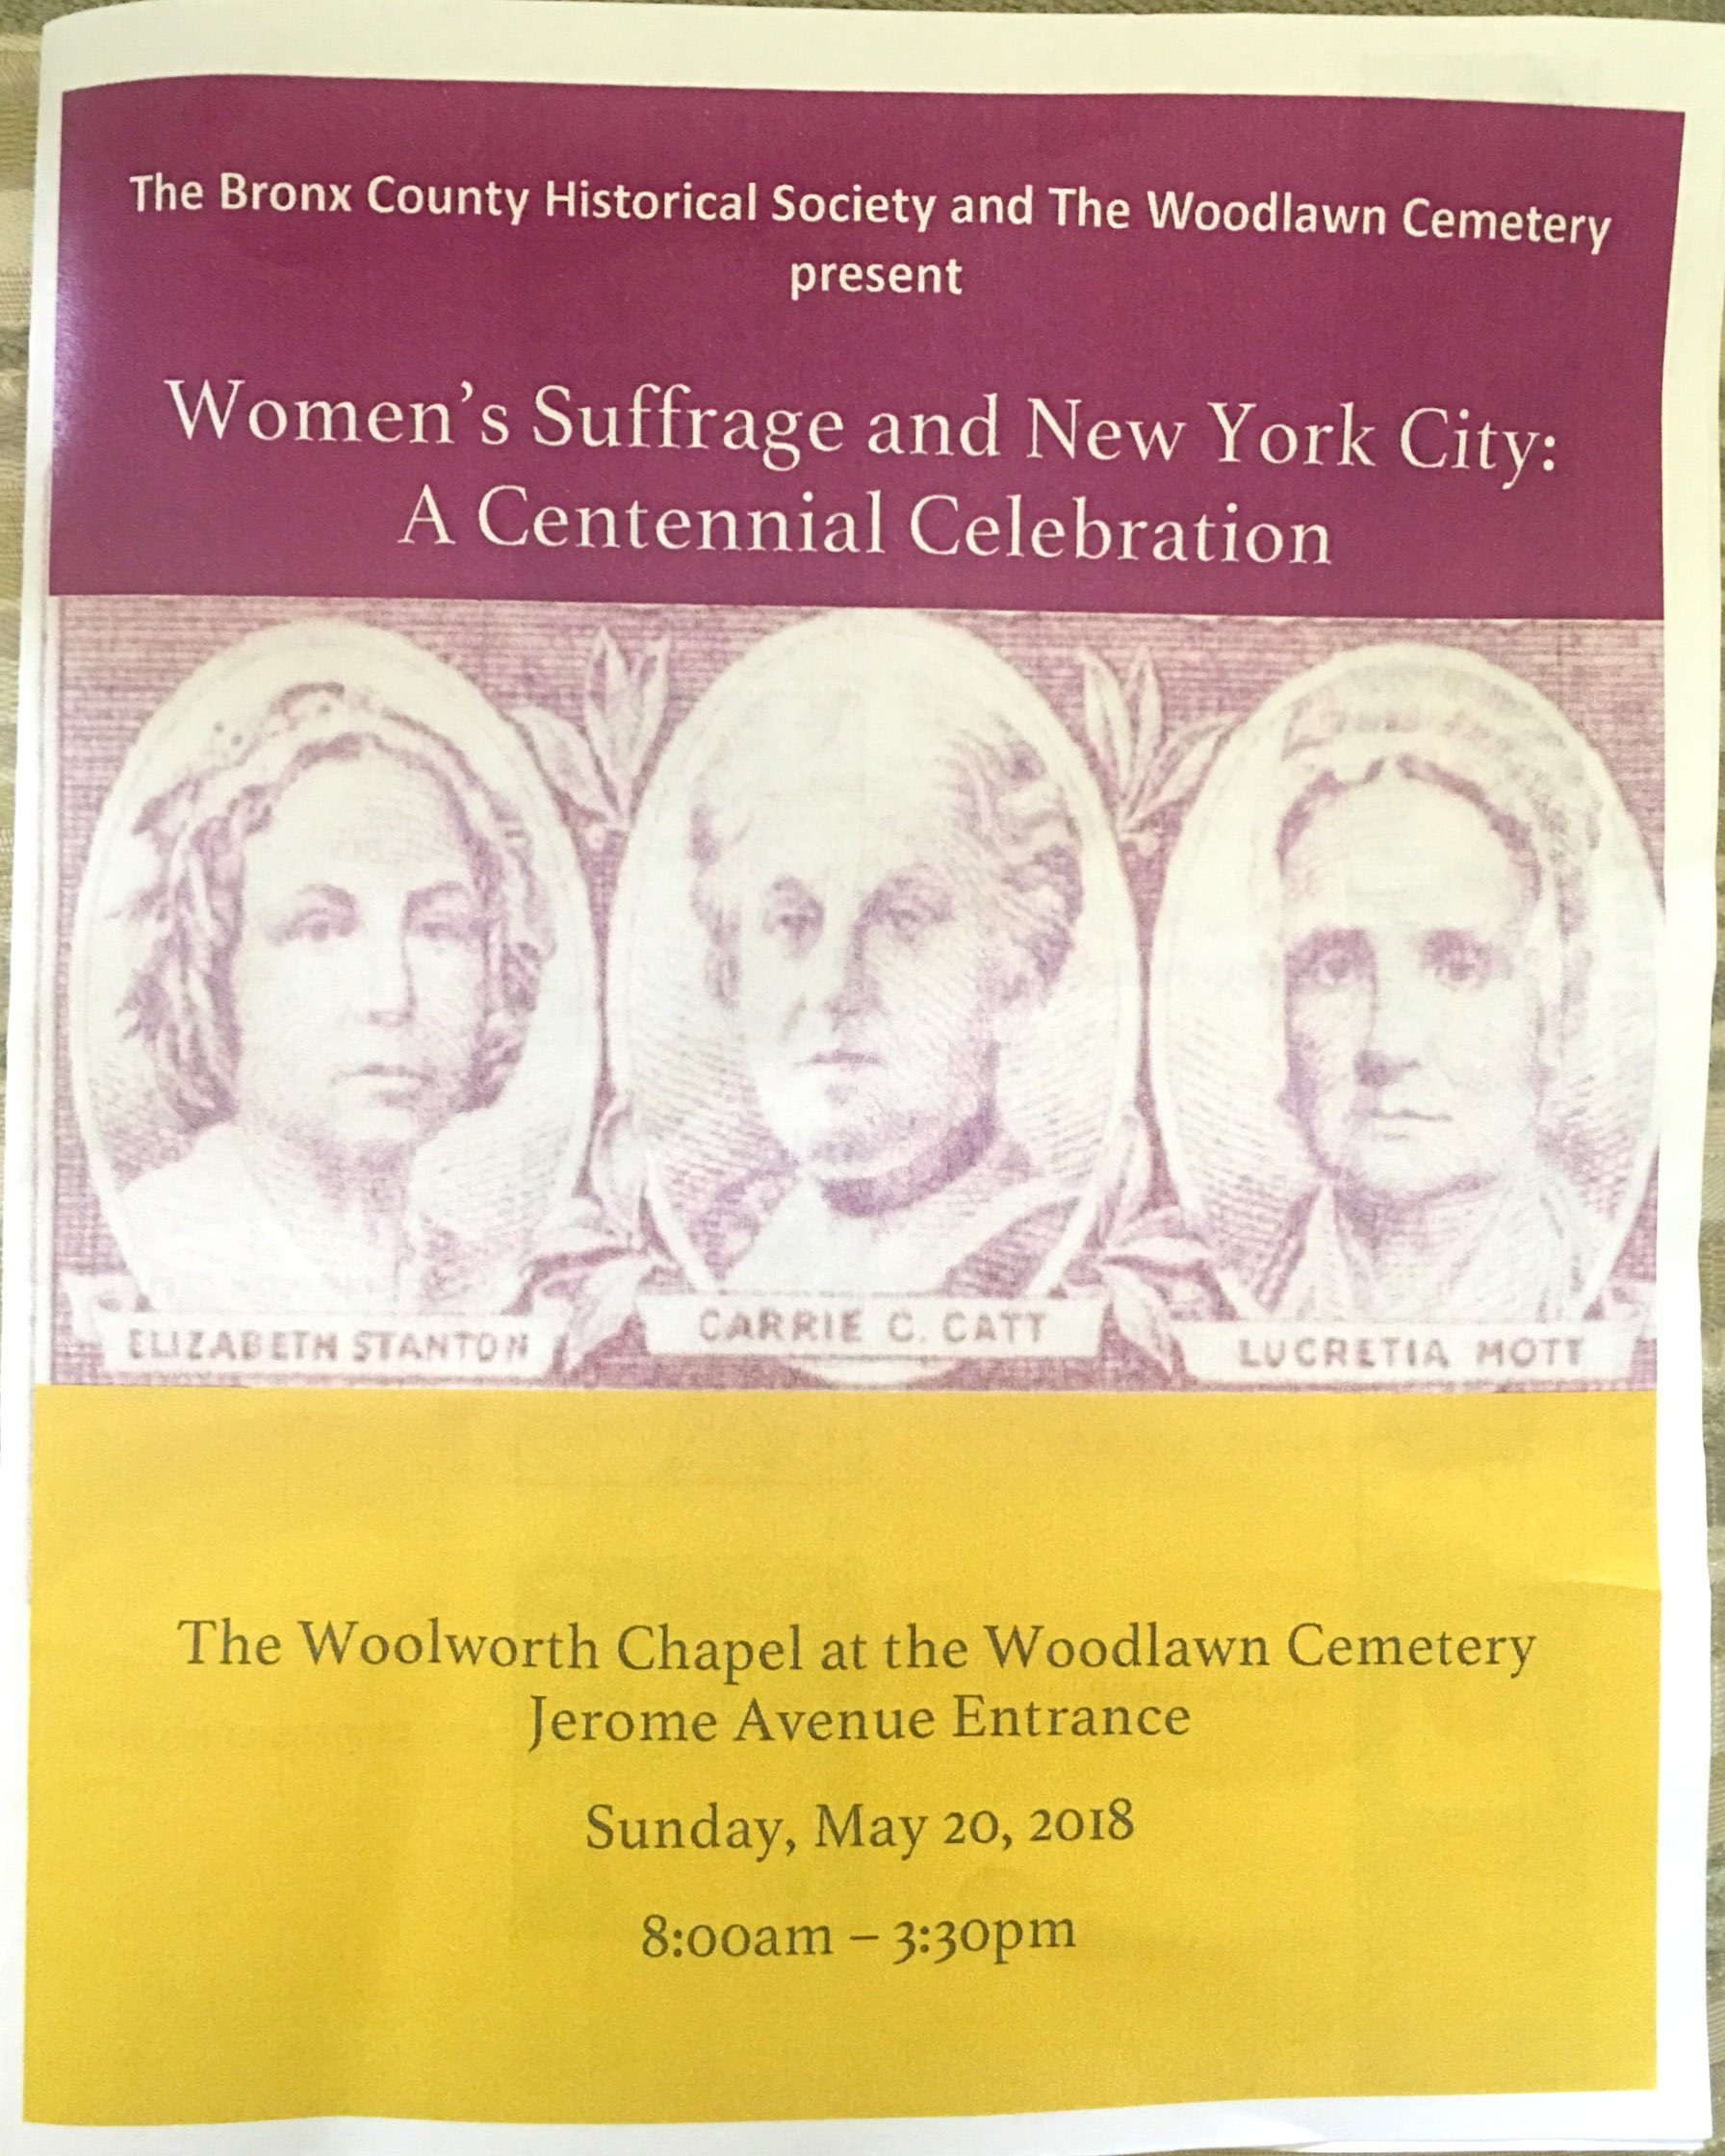 Women's Suffrage and New York City: A Centennial Celebration